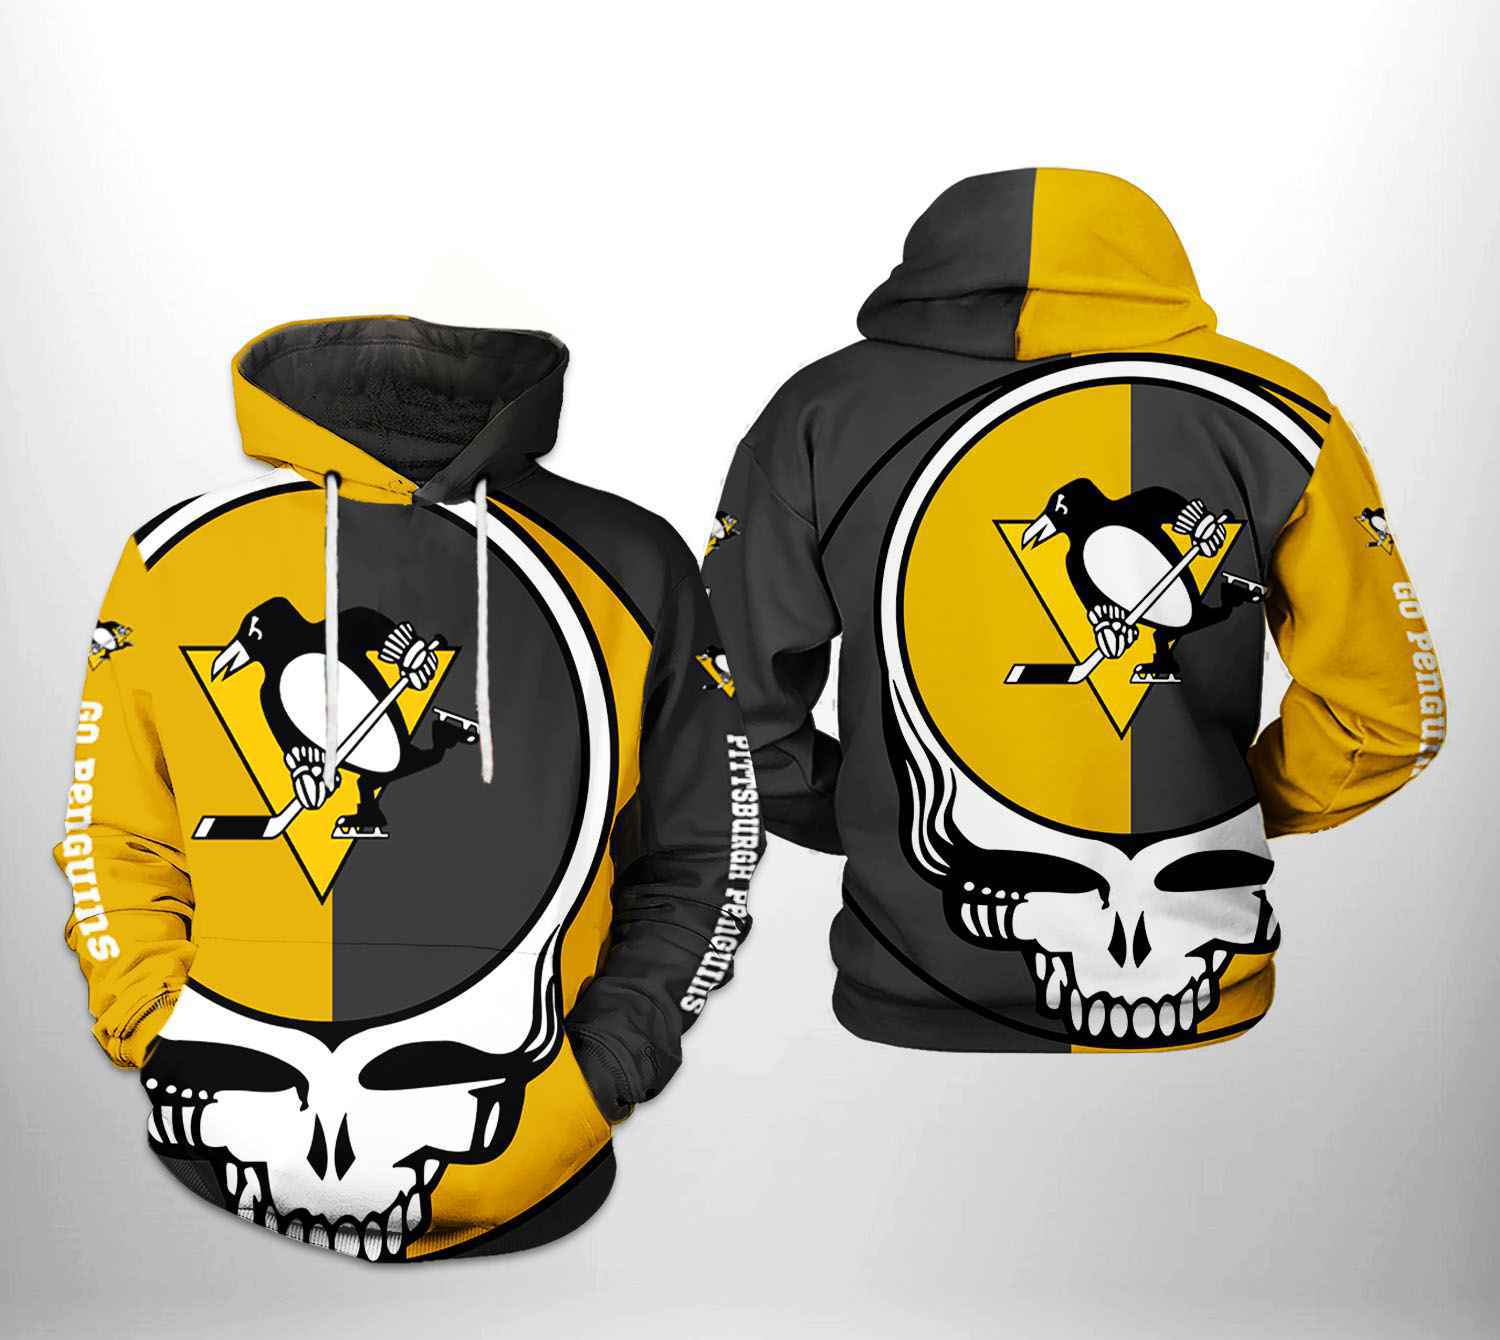 Pittsburgh Penguins and Steelers Champs Hoodie